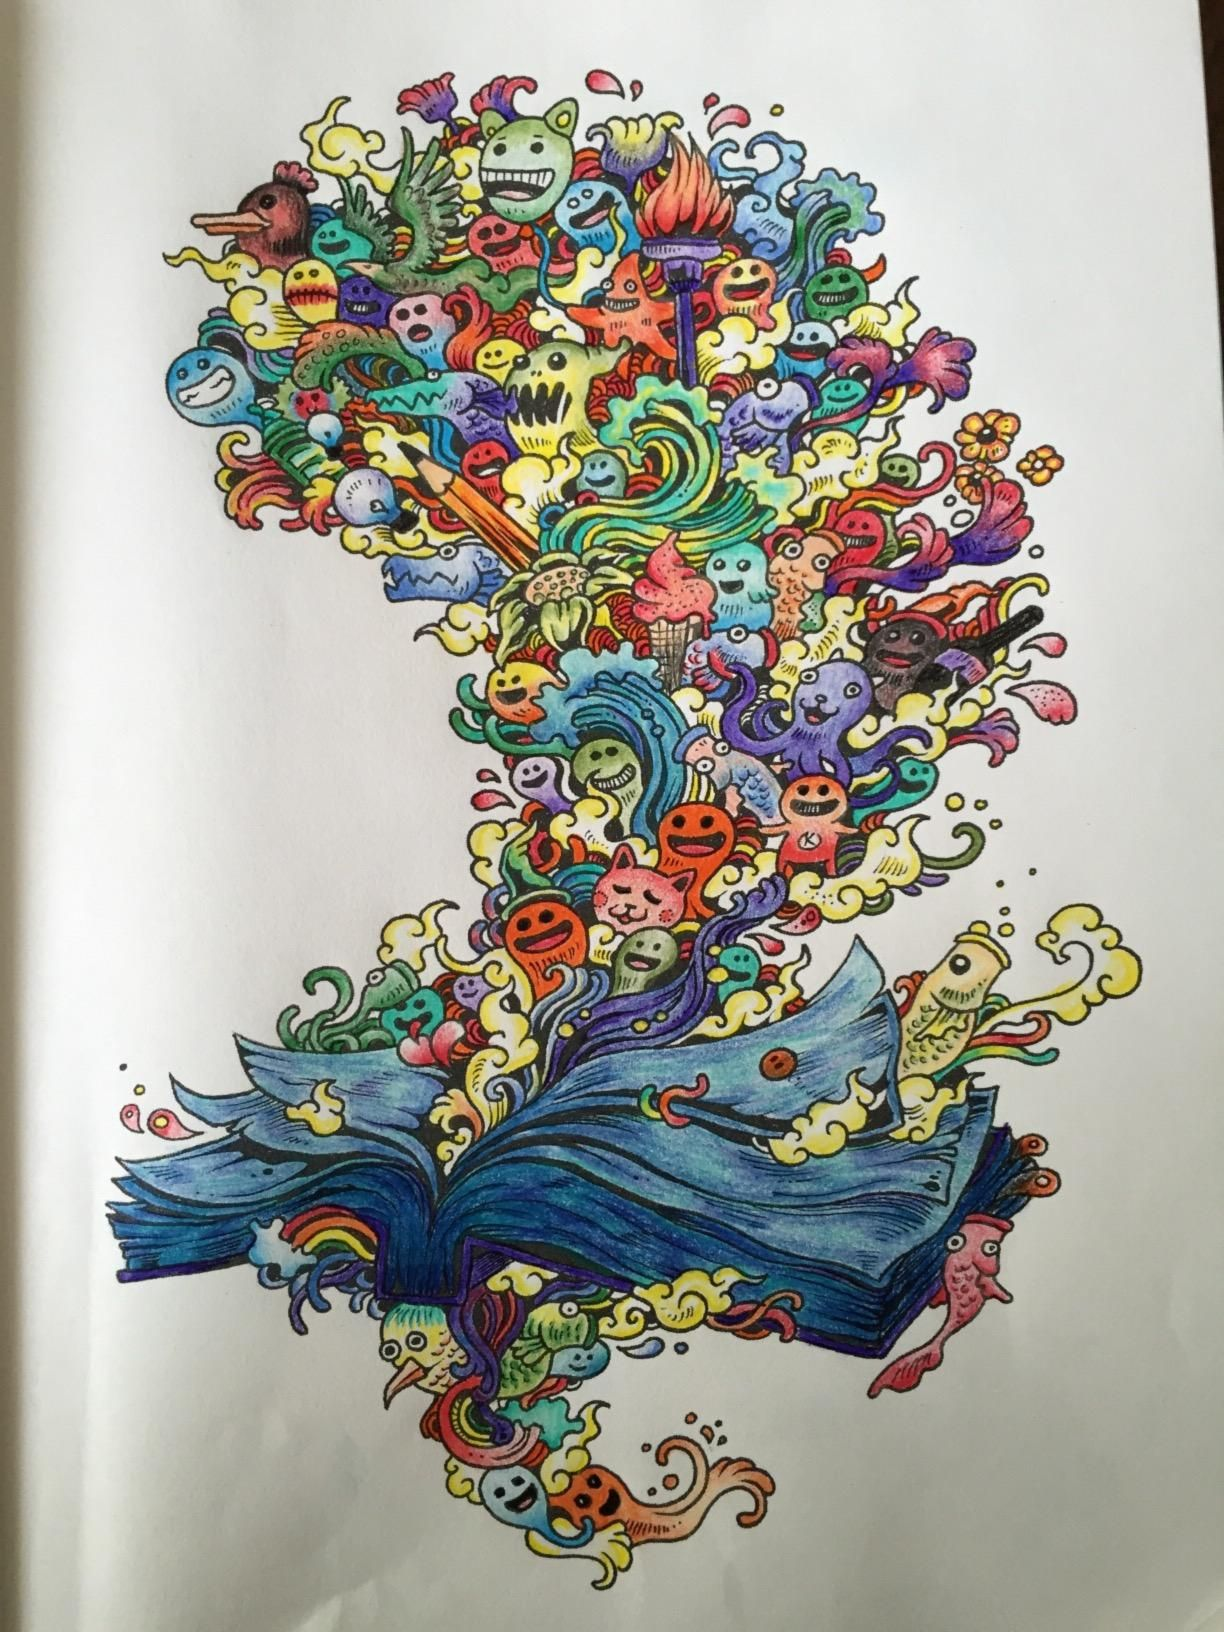 Doodle Invasion Zifflins Coloring Book Zifflin Kerby Rosanes By Sarah On May 05 2015